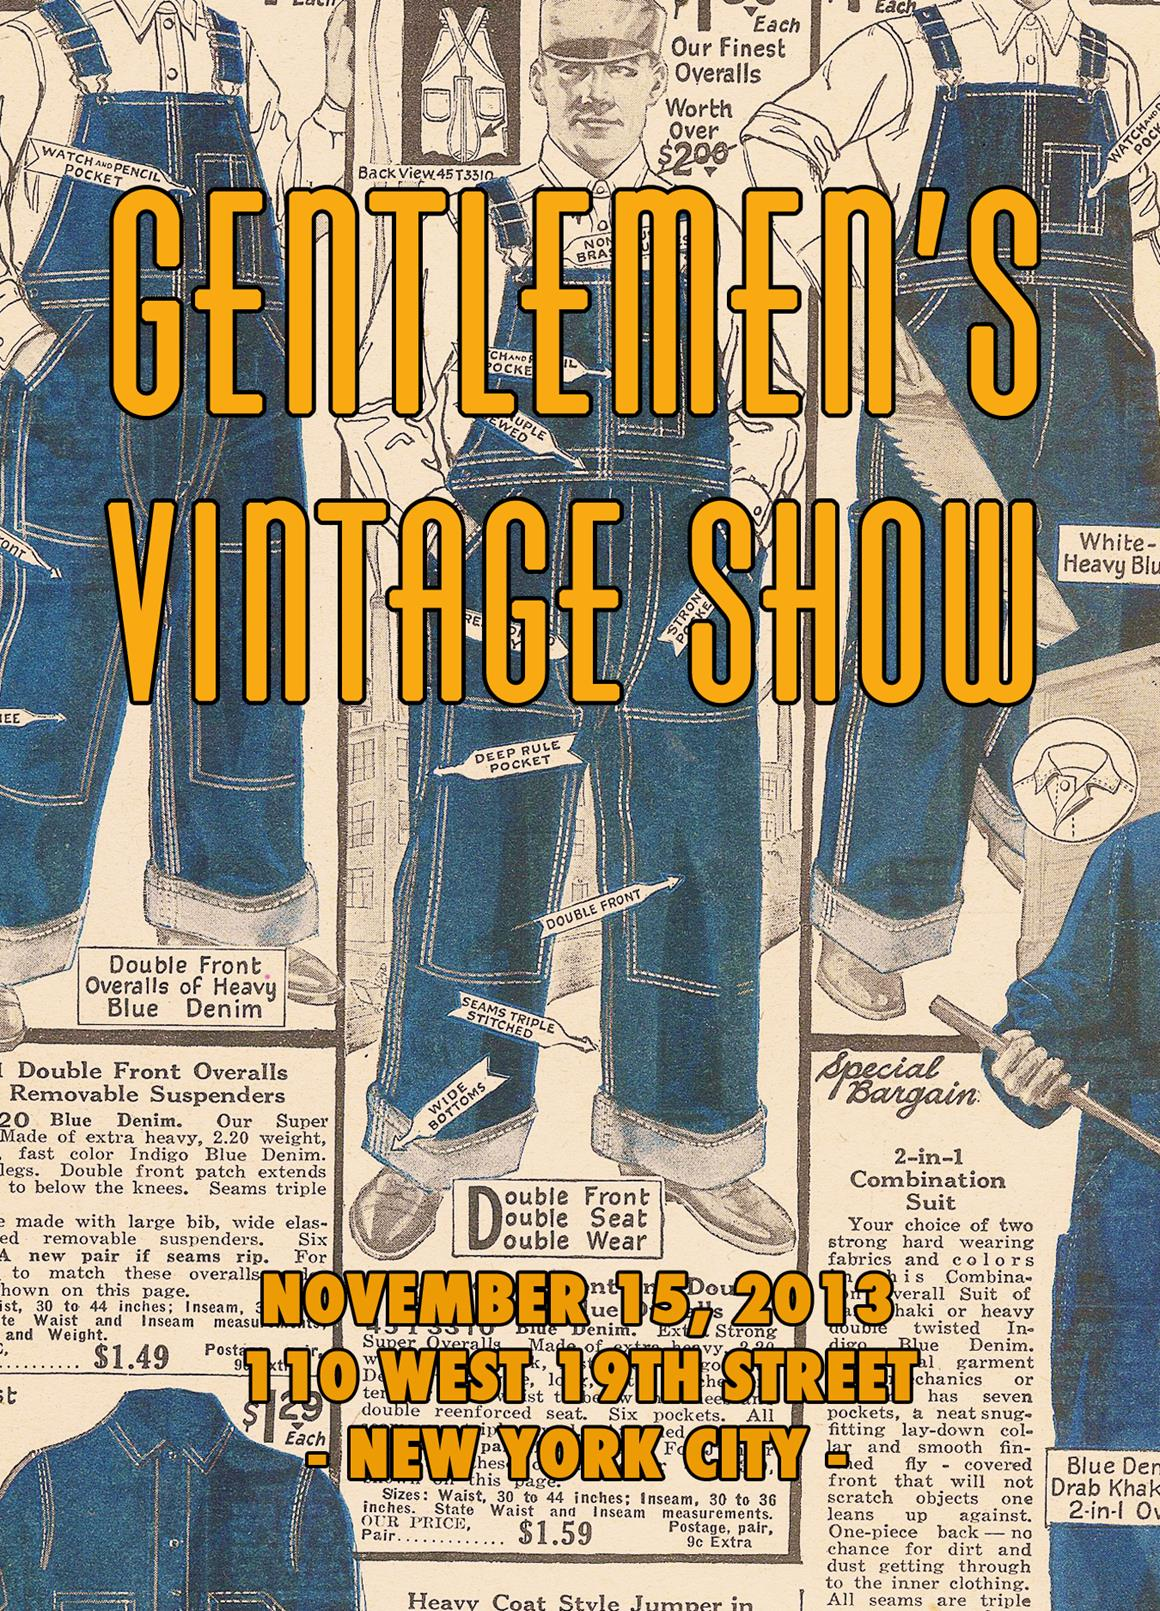 Gentlemen's Vintage Show and Sale